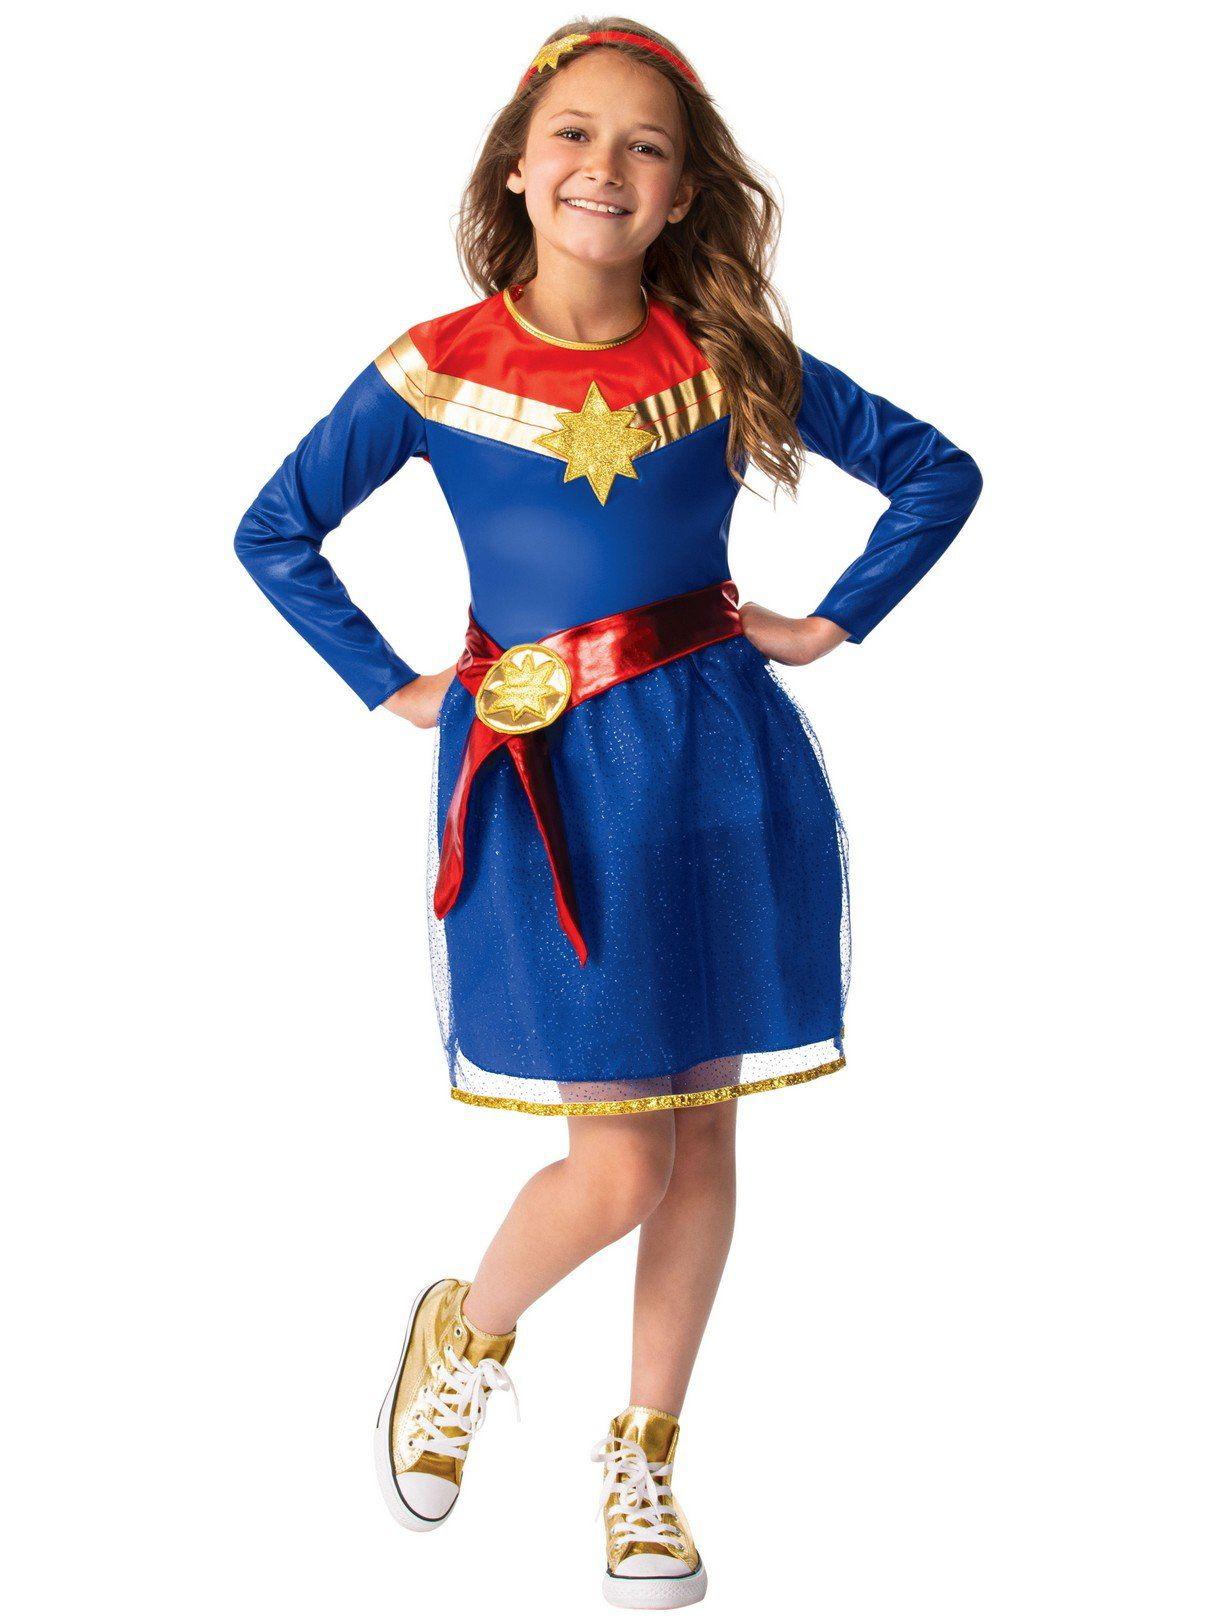 Captain Marvel Tutu Dress Costume Walmart Com Walmart Com With the release of the first photo of brie larson in costume in the upcoming captain marvel film (it was a candid set photo, so we don't know for sure what the context of the costume will be), it made us think about the many different. walmart